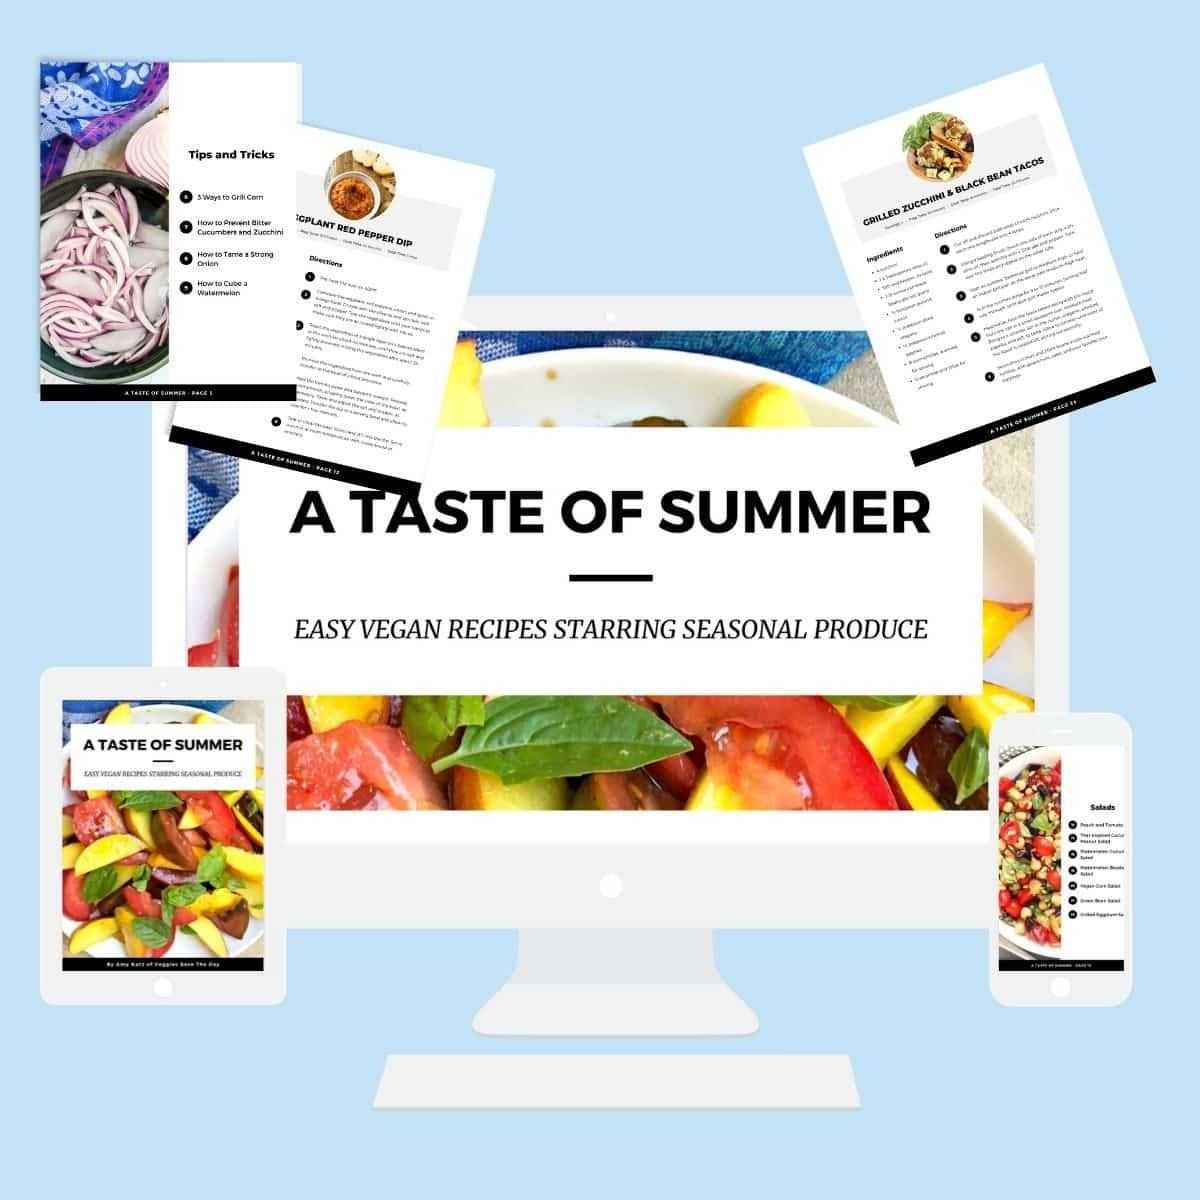 A Taste Of Summer eBook on a computer, tablet, and iPhone plus a few pages from the cookbook